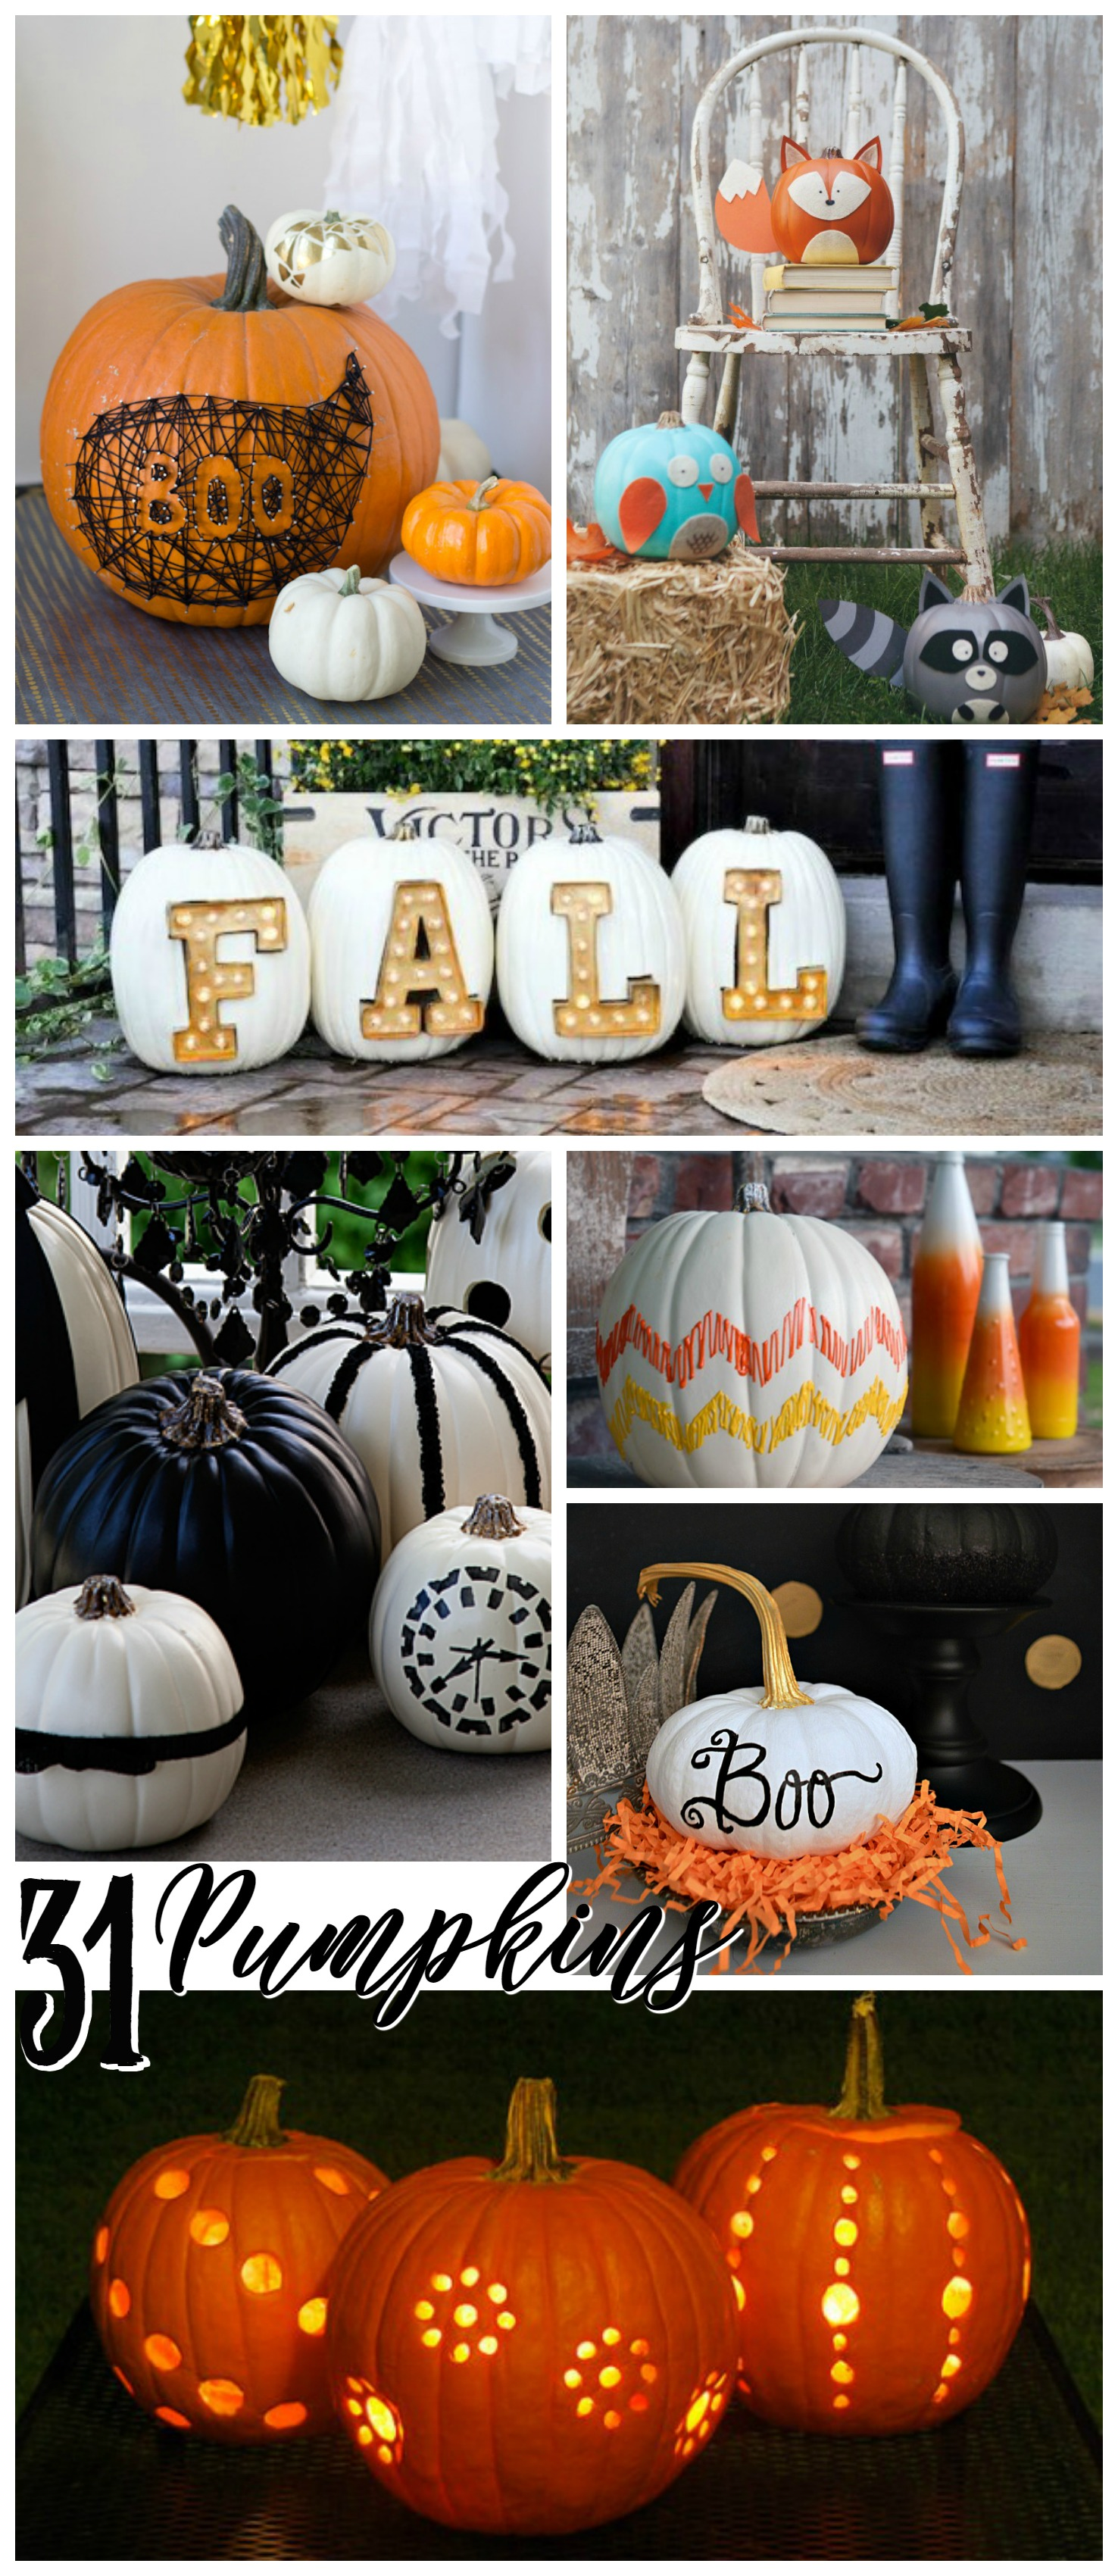 31-days-of-October-fabulous-pumpkin-decorating-ideas-for-a-festive-holiday